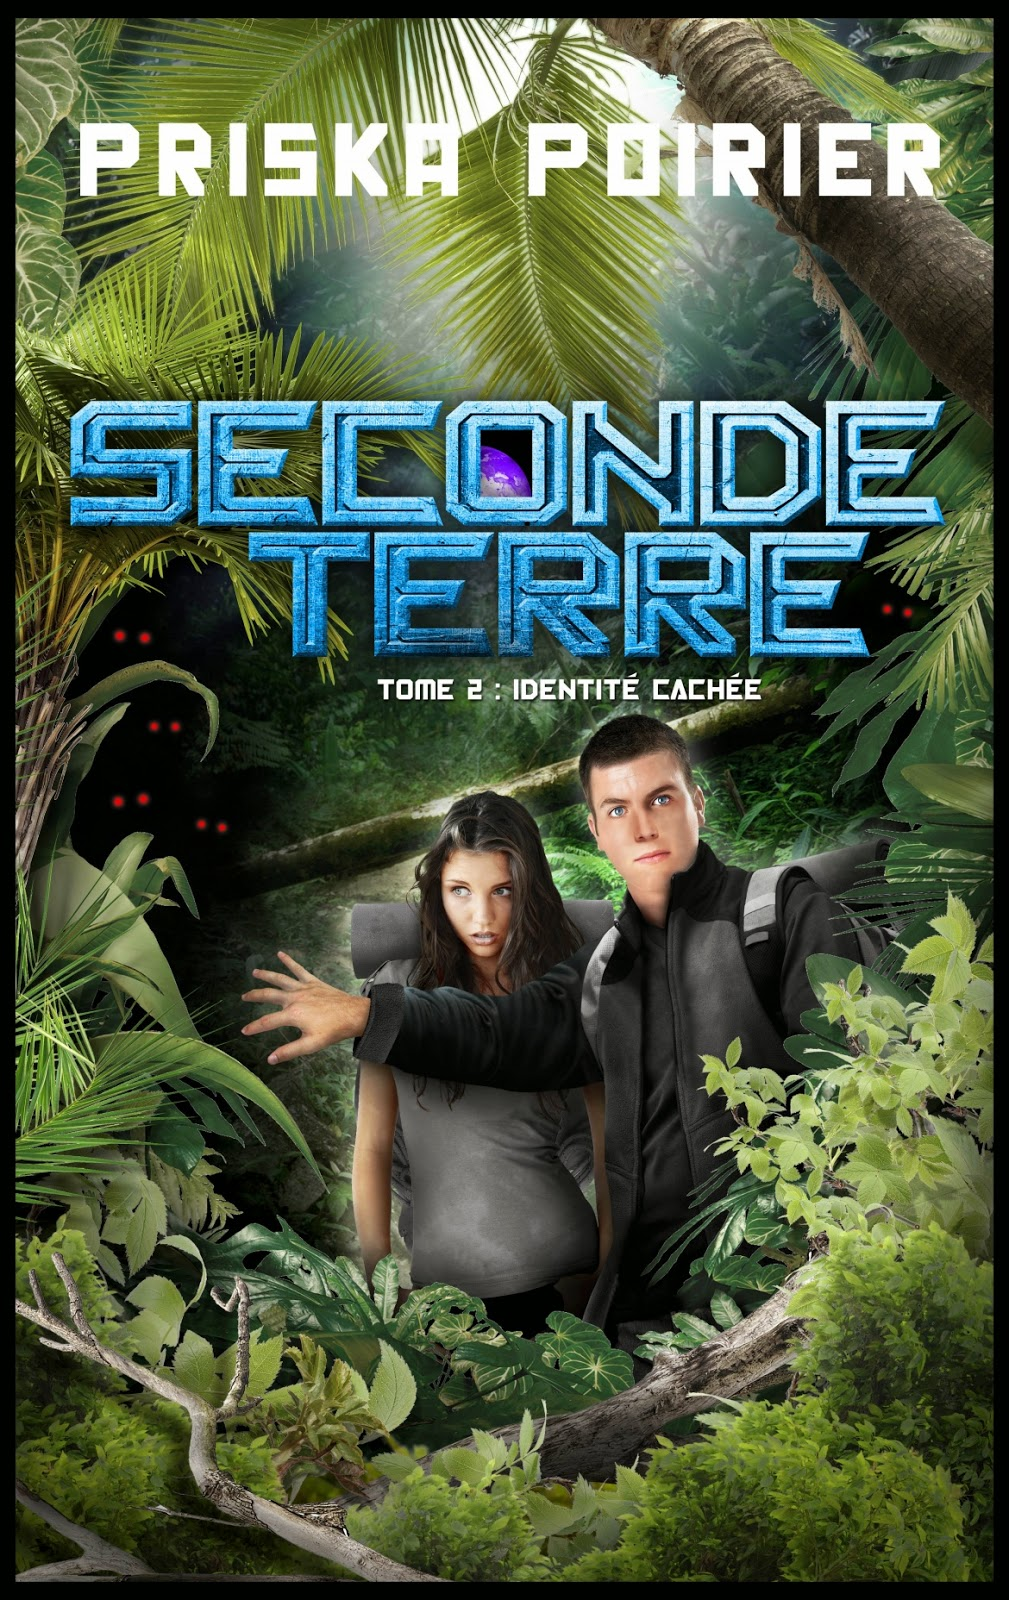 https://editionsdemortagne.com/produit/seconde-terre-tome-2-identite-cachee/